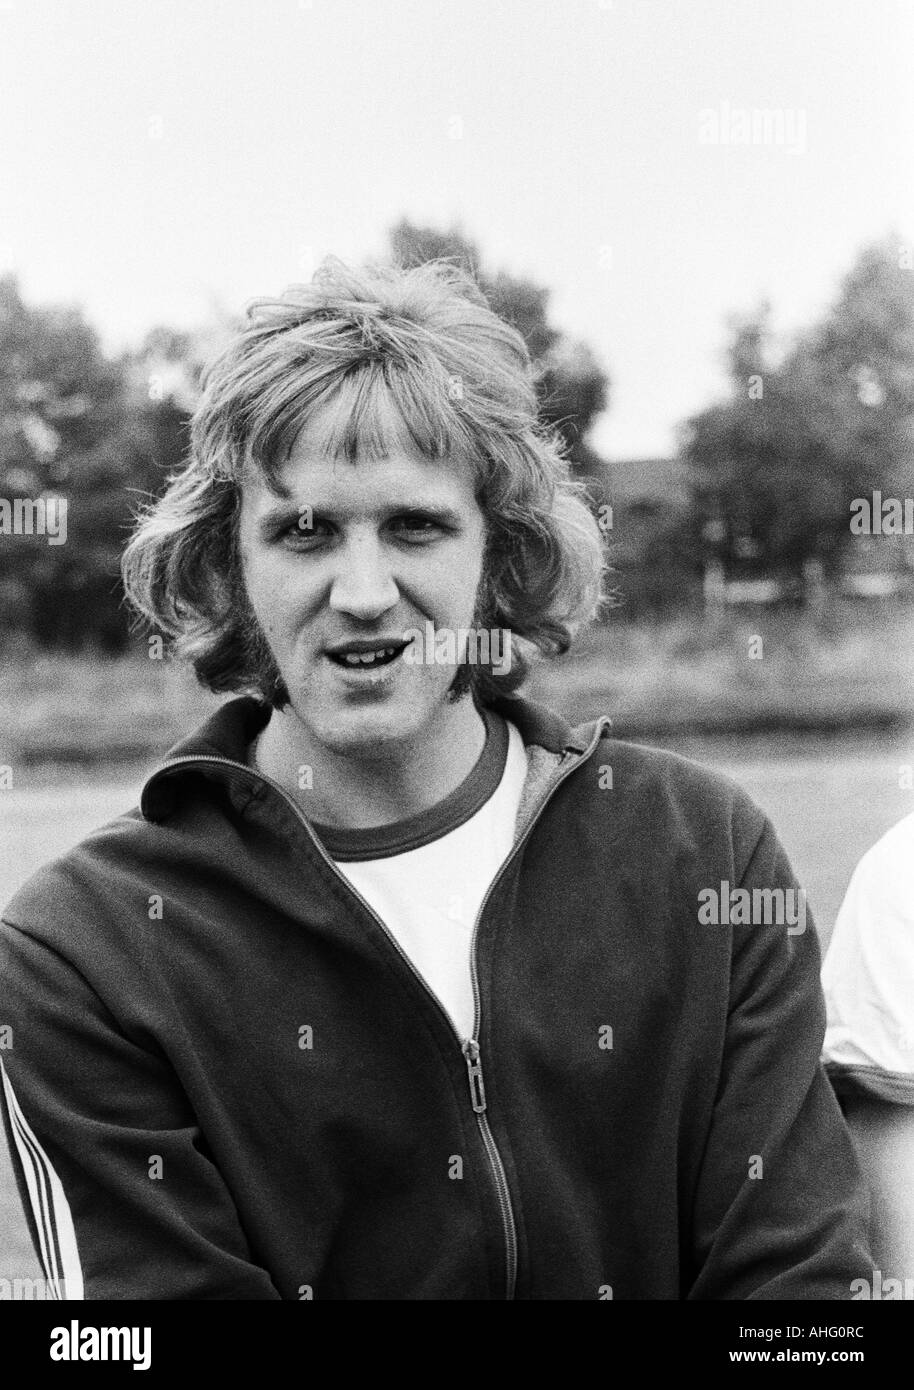 football, second Bundesliga North, Rot-Weiss Oberhausen, presentation of the team for the new saison 1974/1975, press photo shooting, portrait of keeper Hans Juergen van de Sand - Stock Image